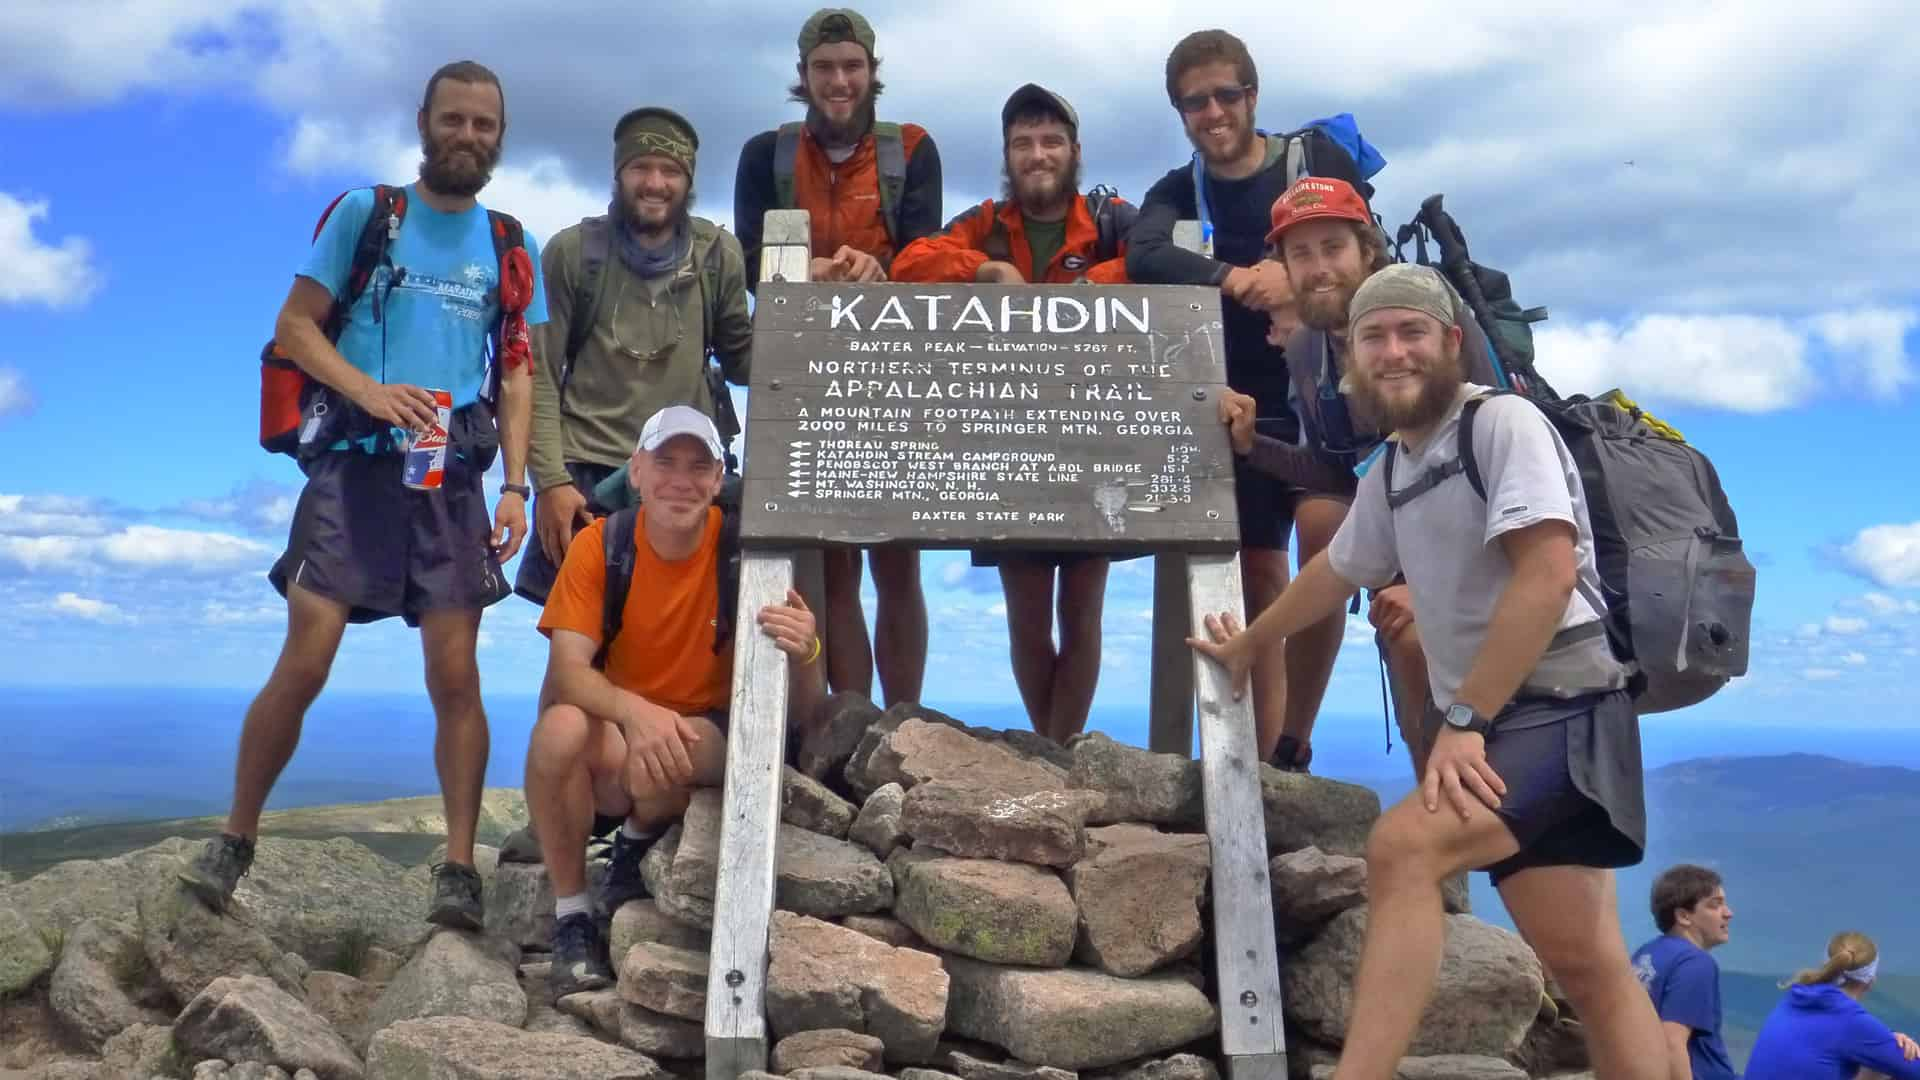 Finishing The Appalachian Trail